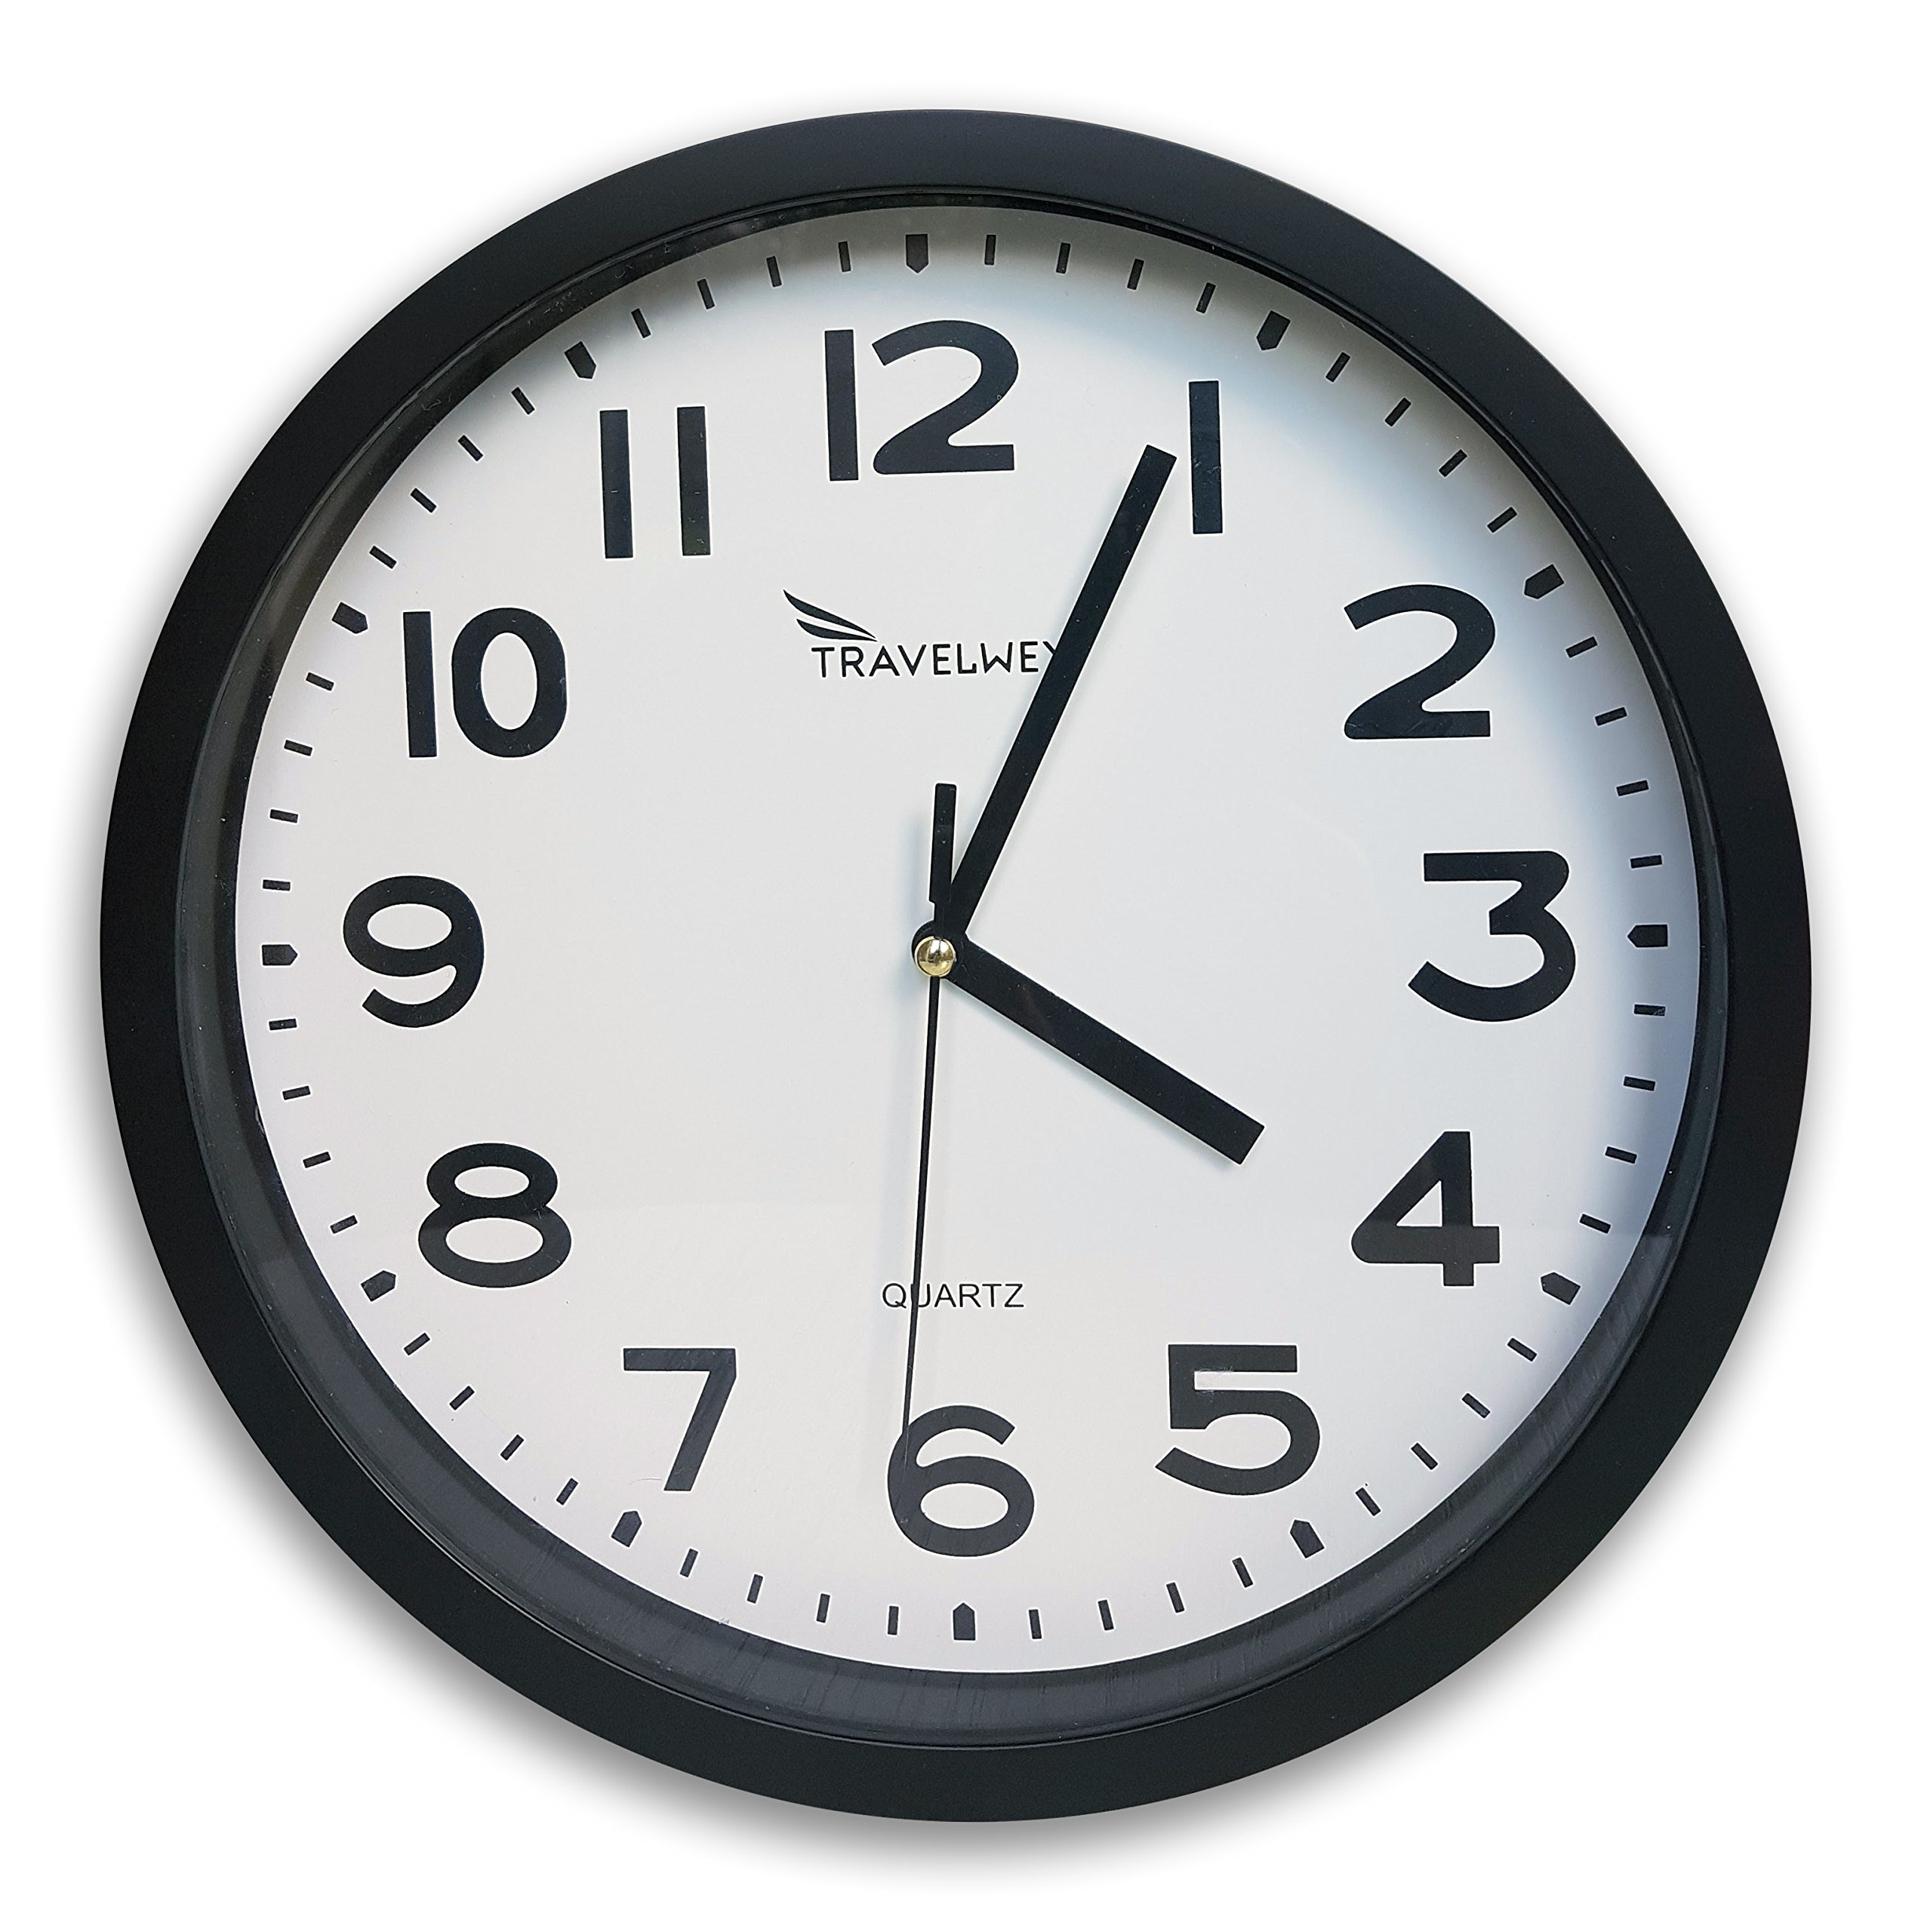 Travelwey Home Wall Clock - No Bells, No Whistles, Simply Hang and Go, Non Ticking, Big Bold Digits, Analog, Battery Operated, Black by Travelwey